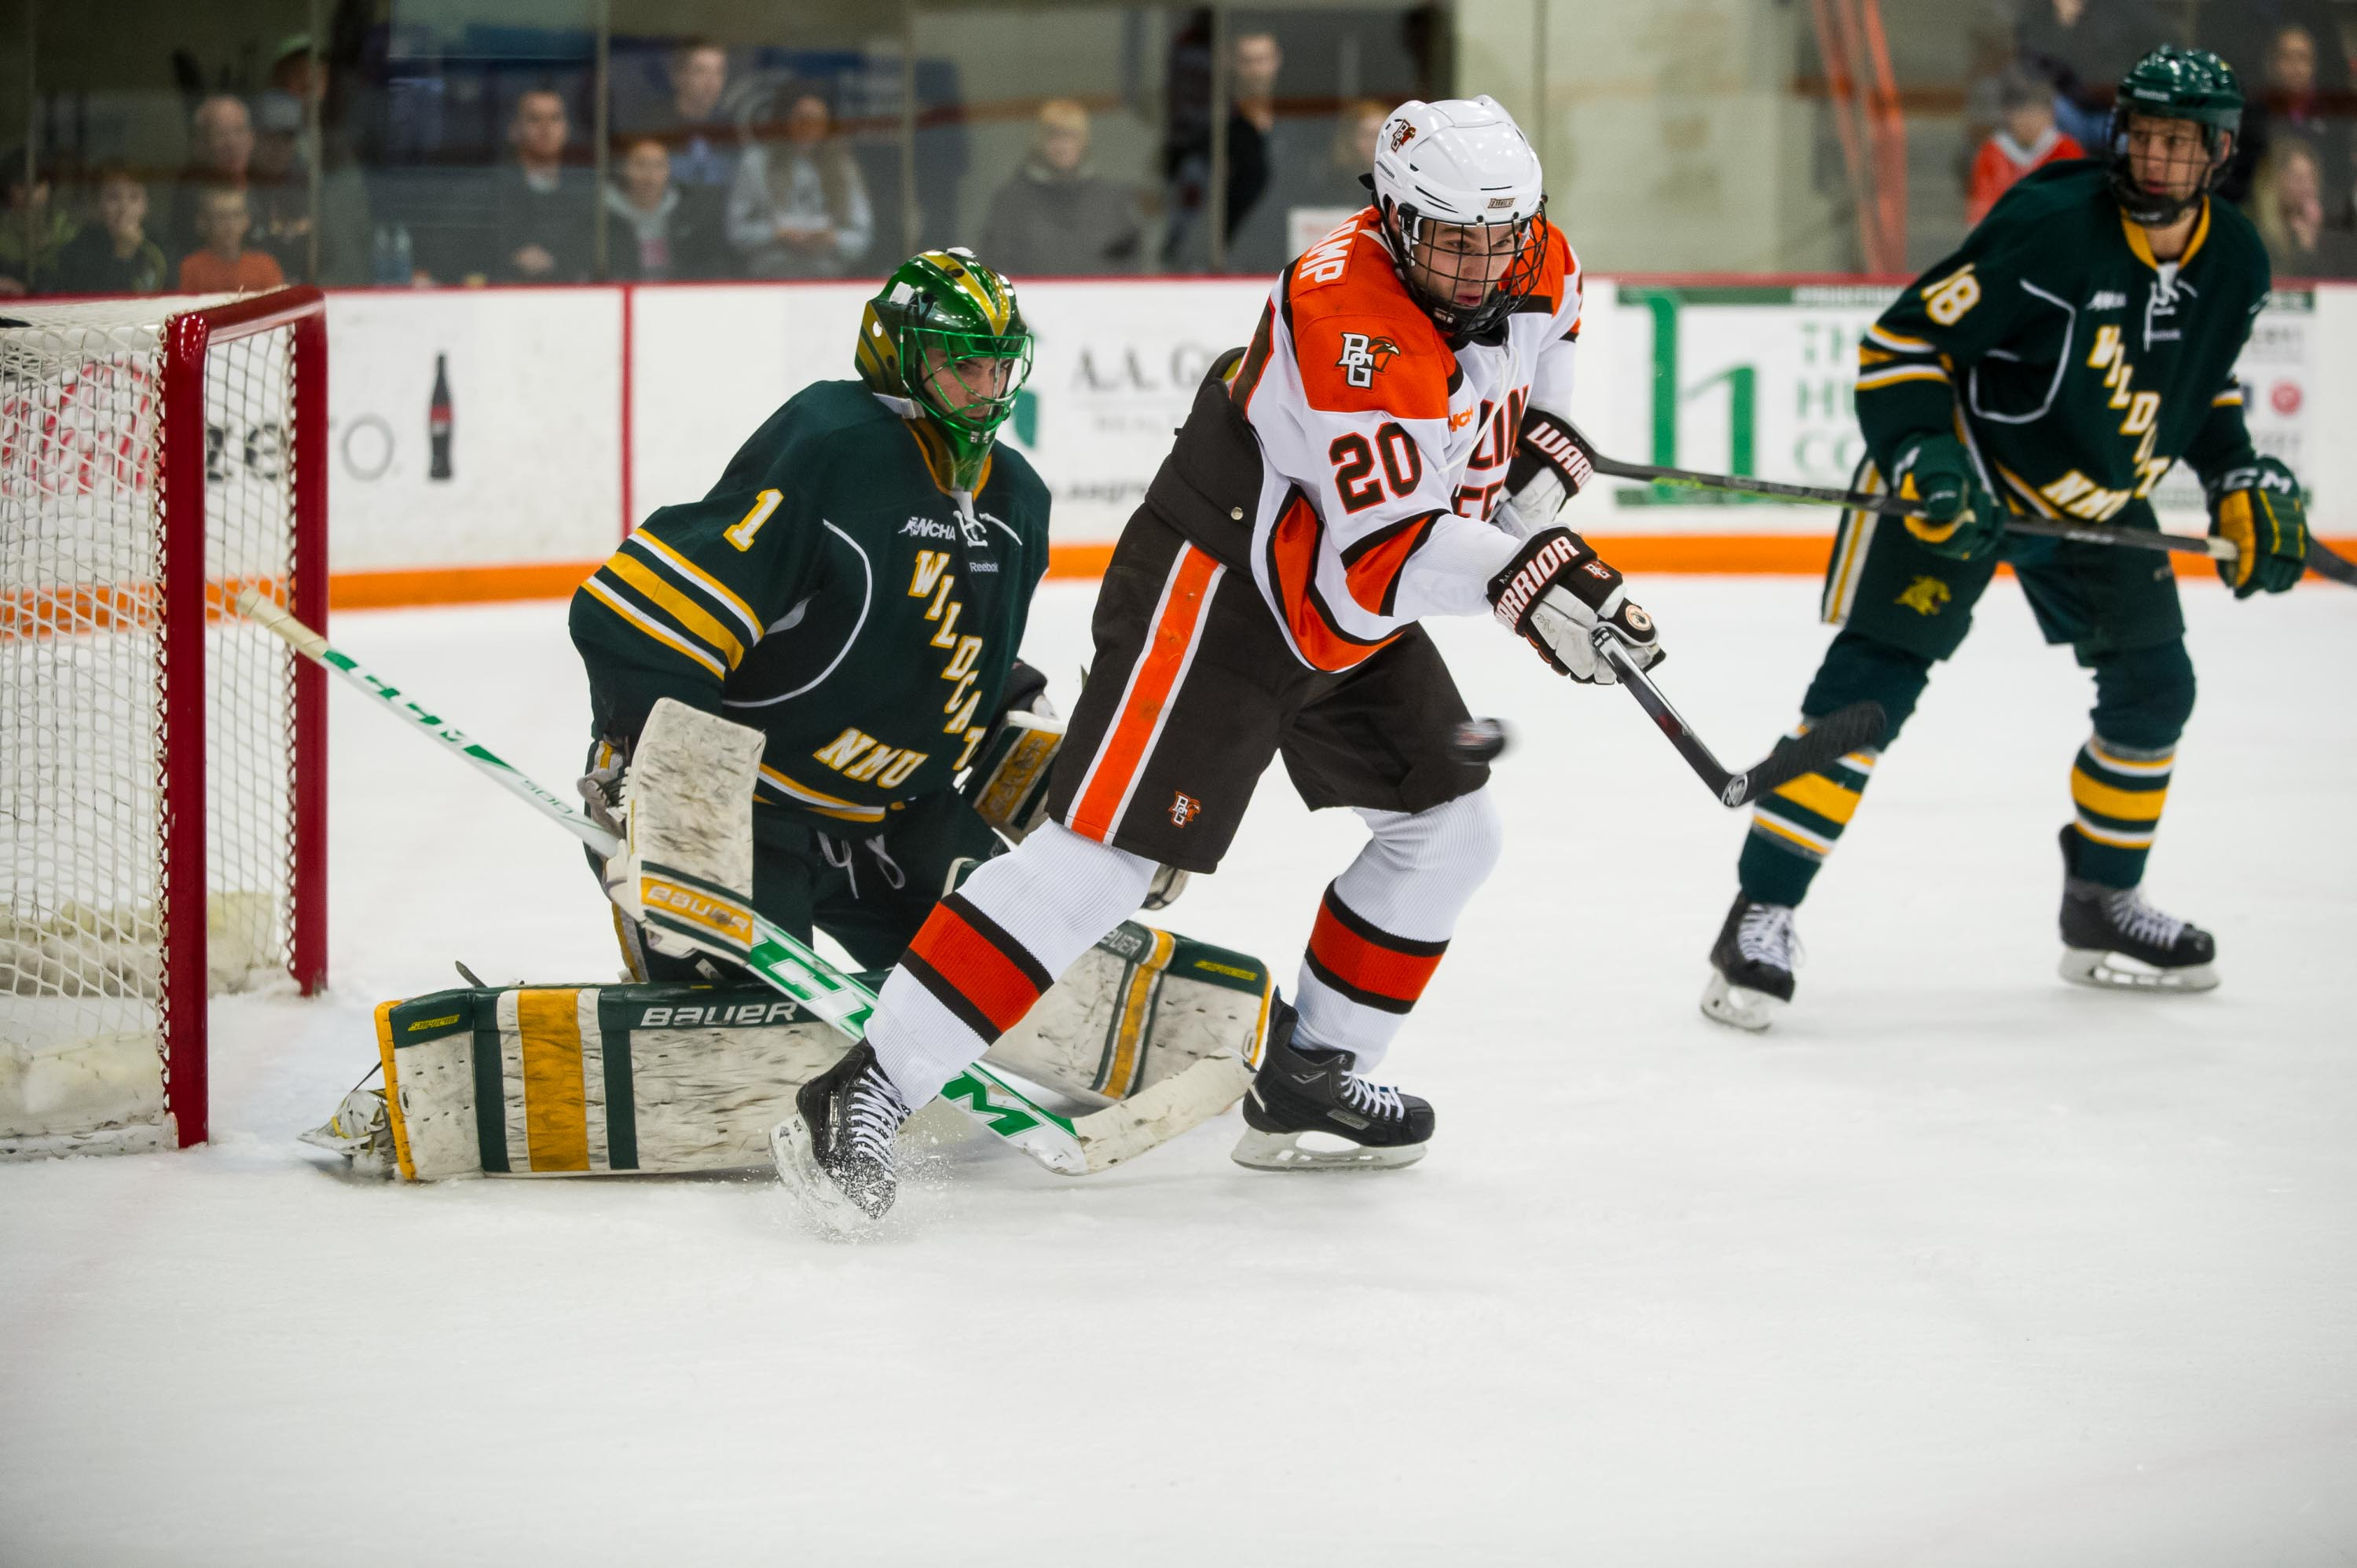 Late Goal by Pohlkamp Seals 4-3 Exhibition Win